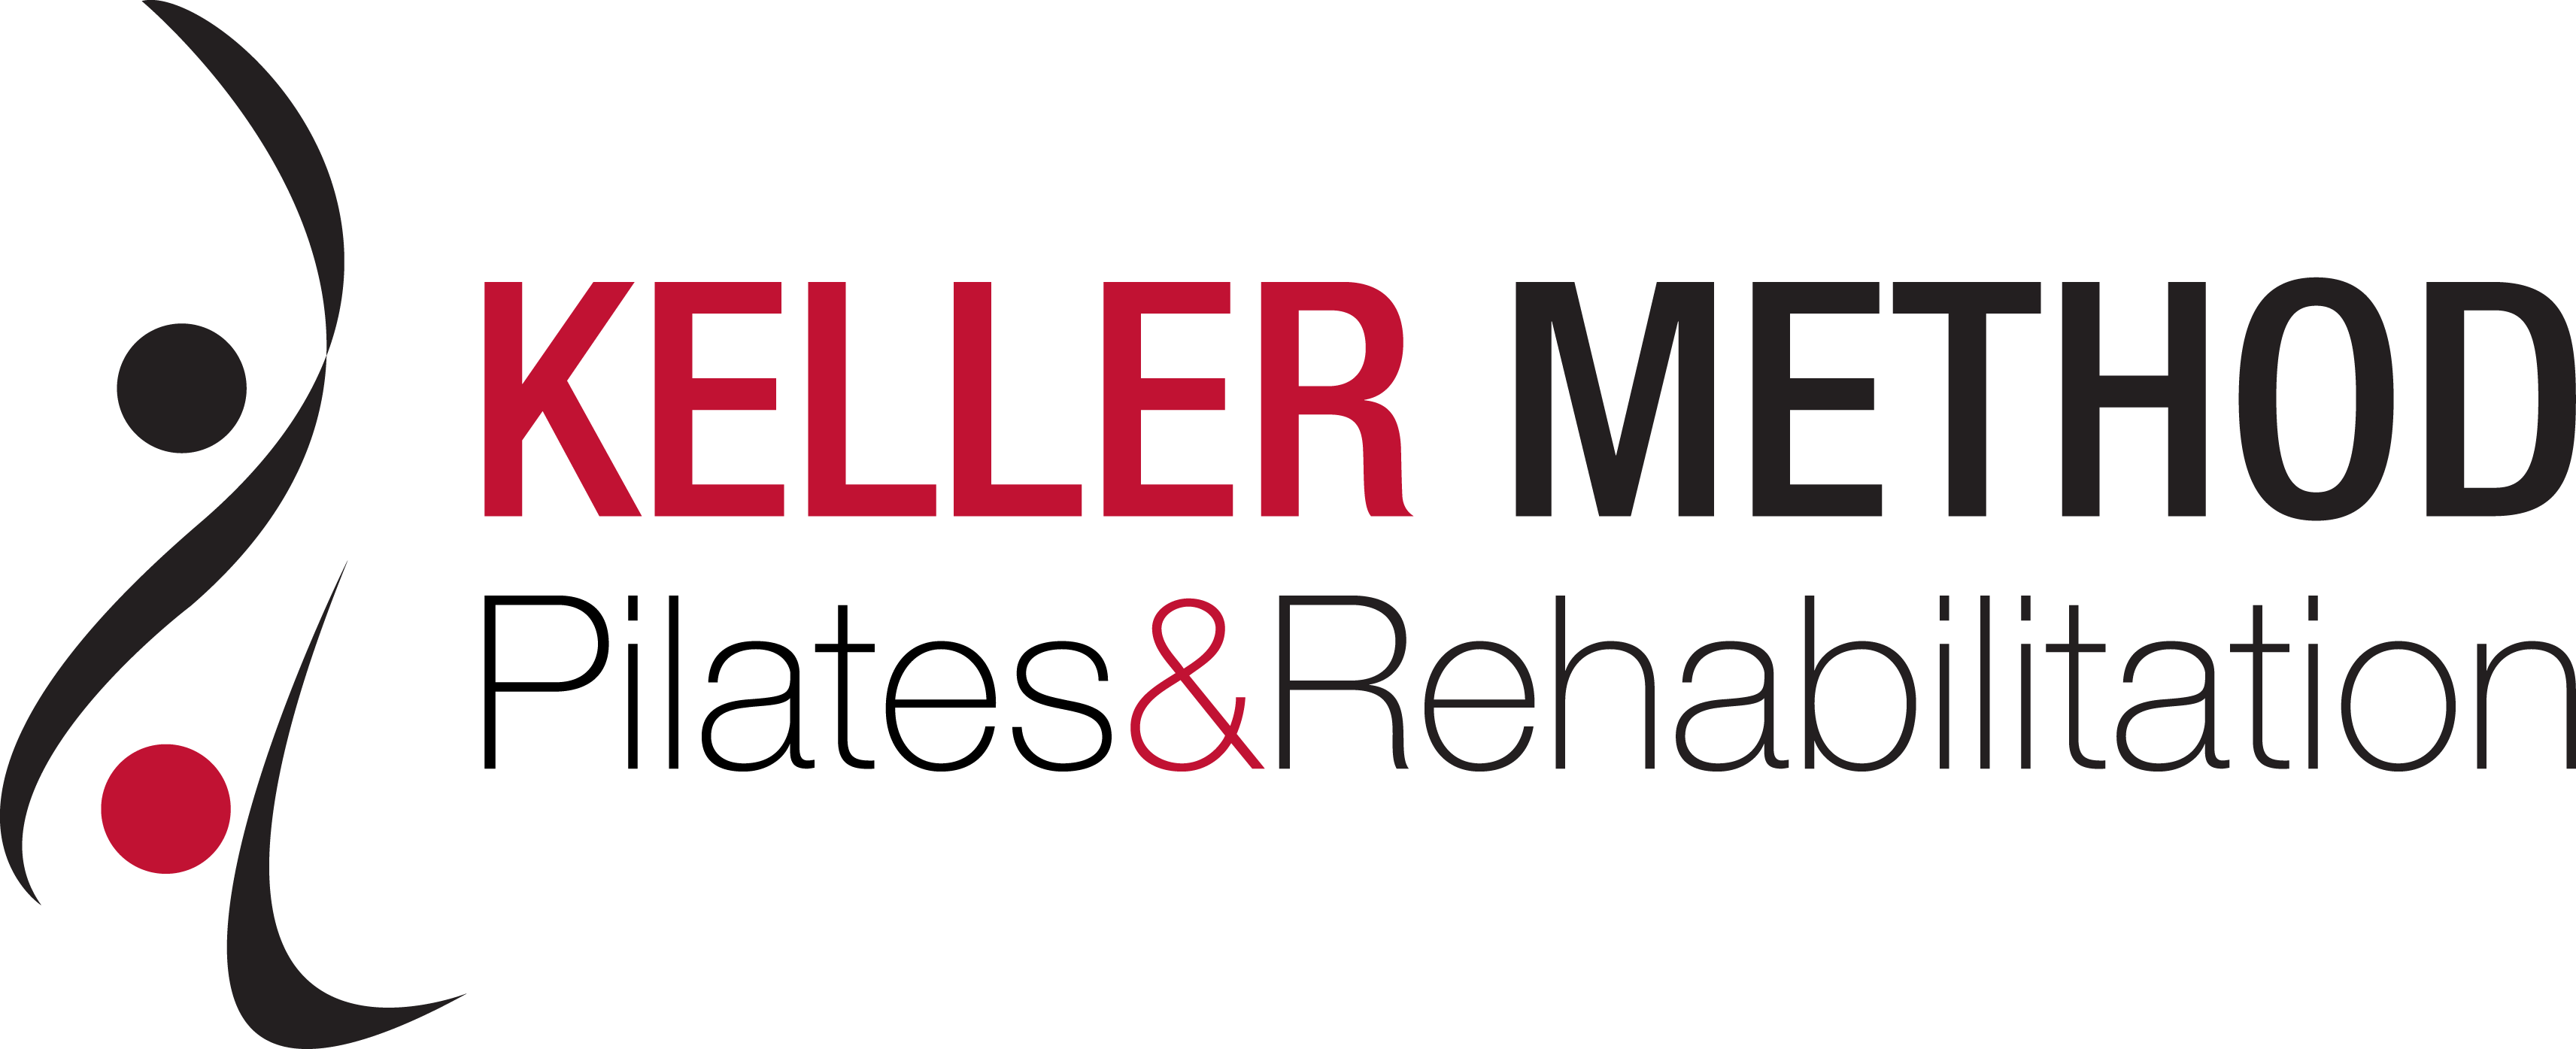 Keller Method Pilates Logo